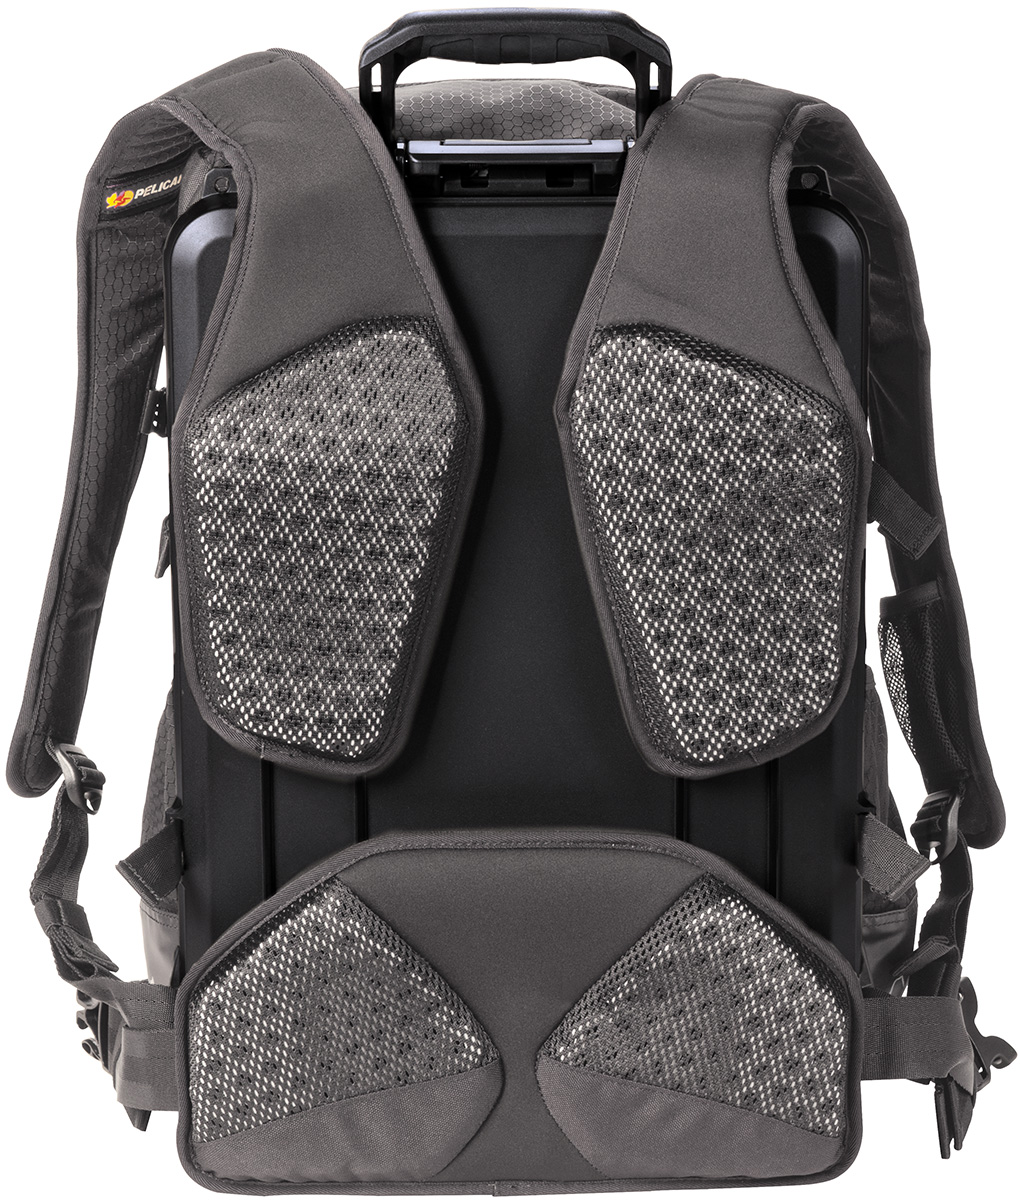 pelican peli products S100 comfortable best hiking back pack